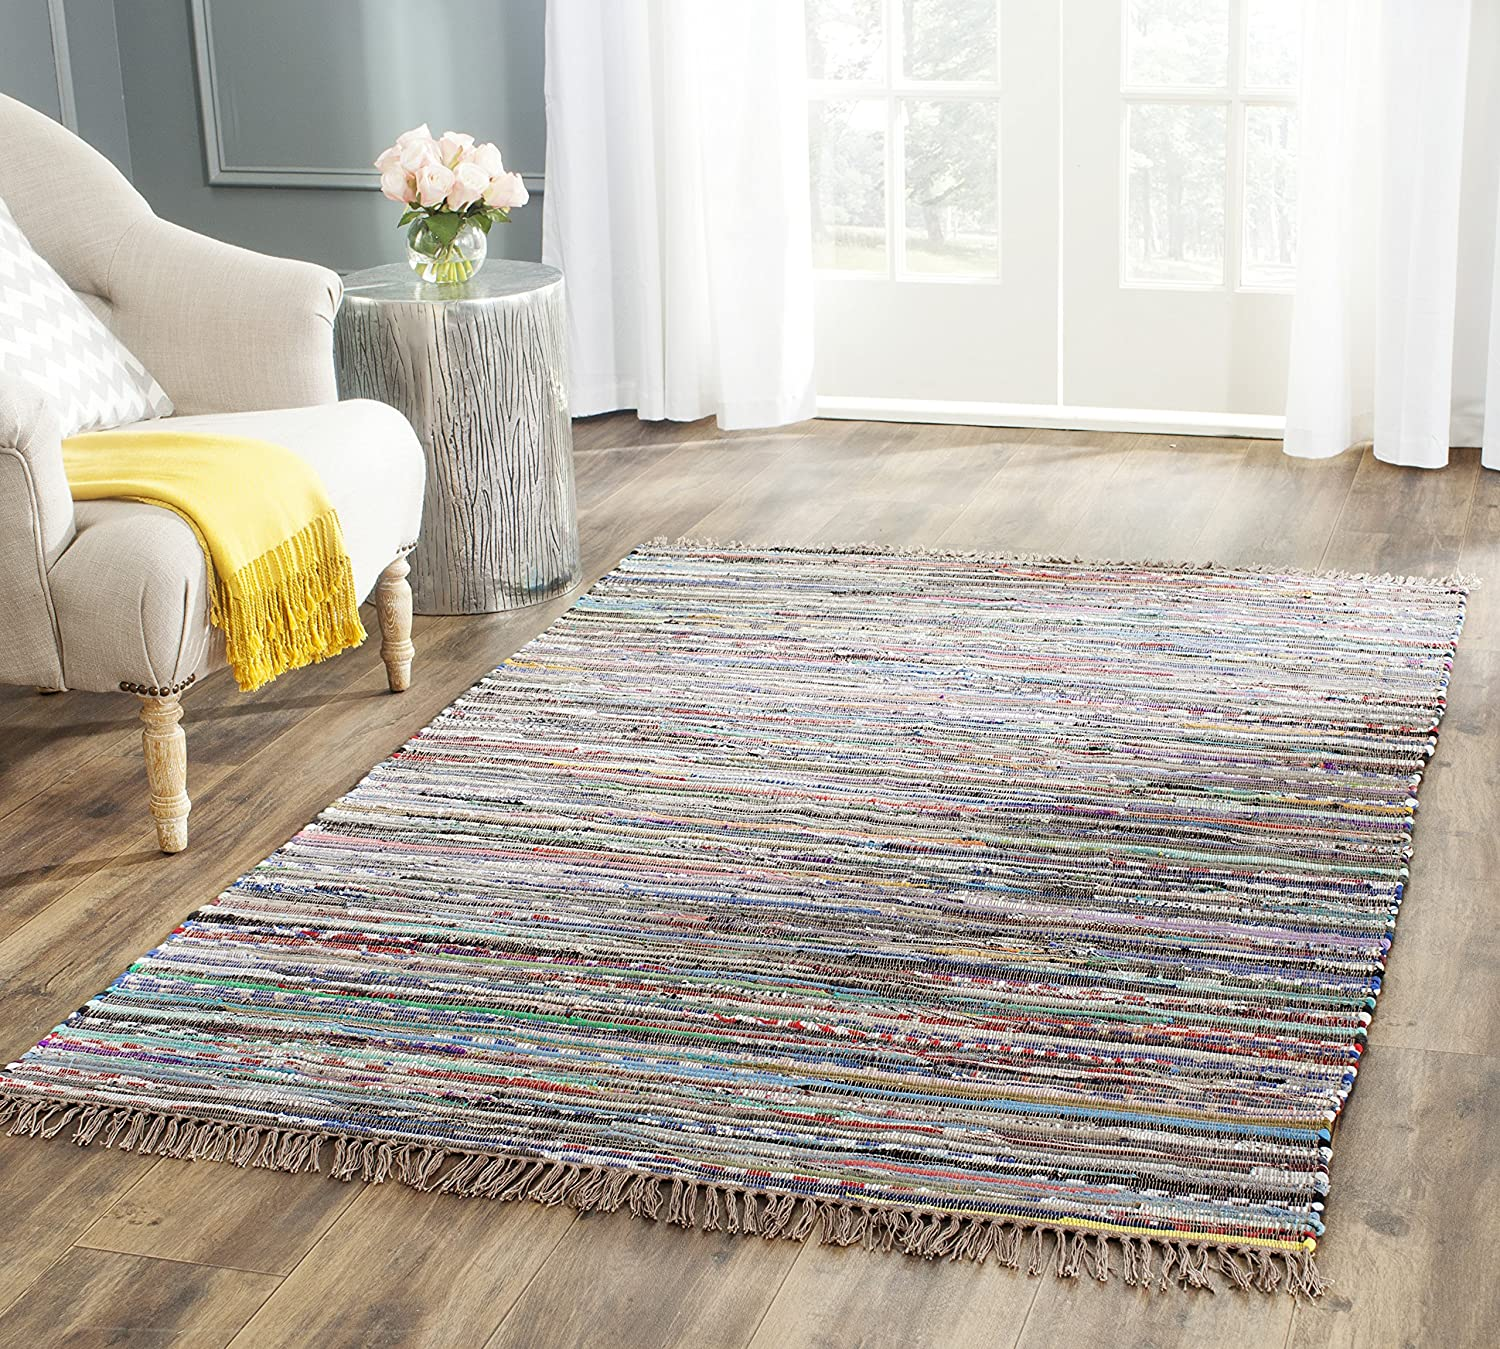 blocks for exquisite decoration x elegant rugs exciting flooring rug area ideas dining lowes silver pad floor room of picture lovely